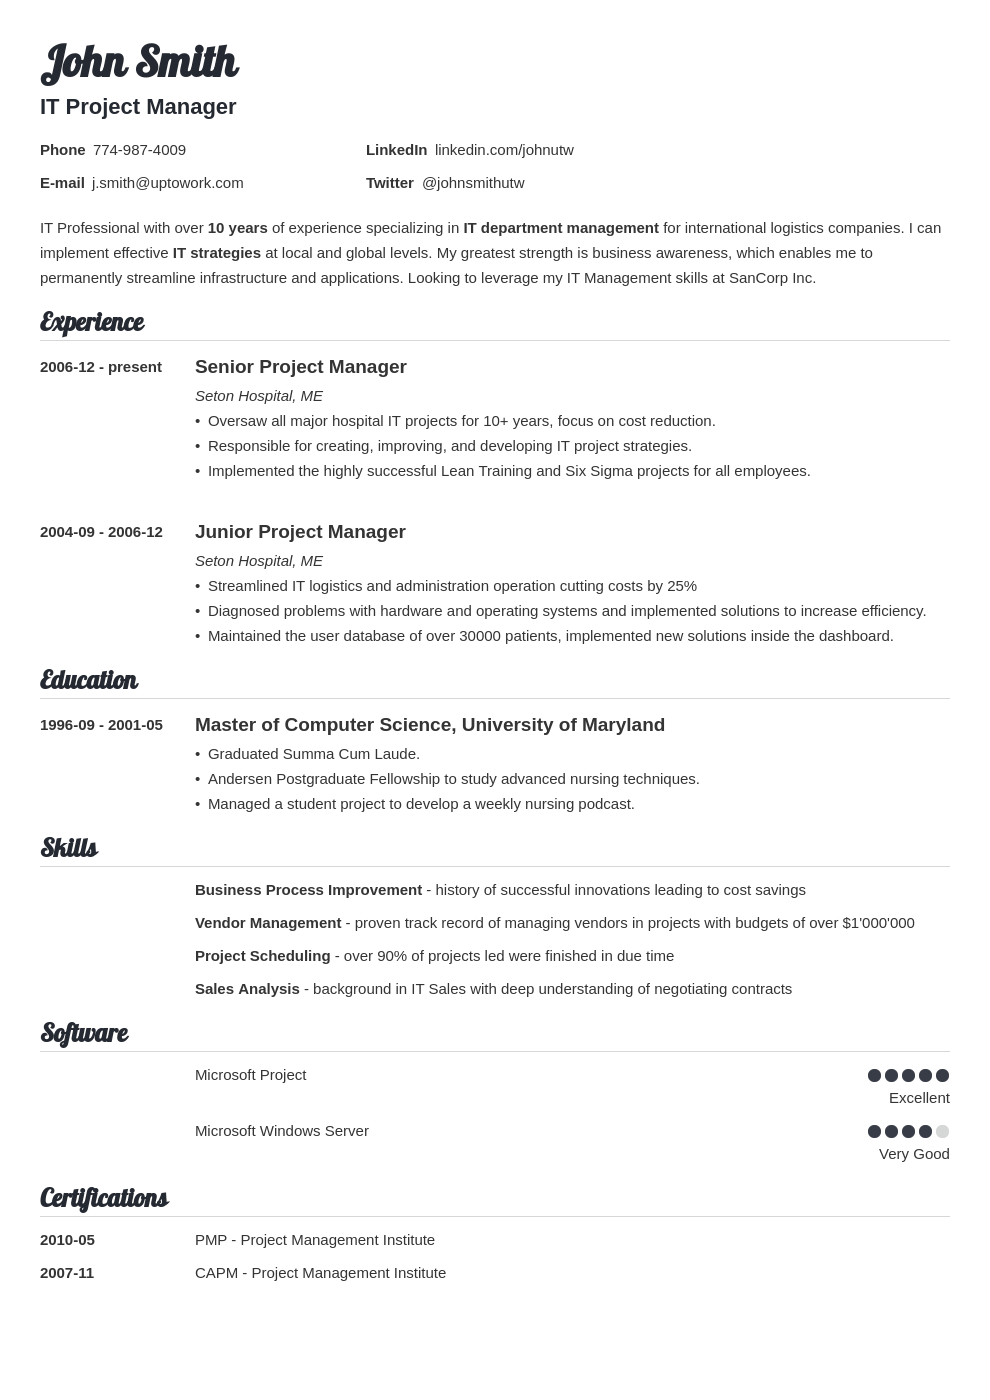 professional resume template valera - Professional Template For Resume